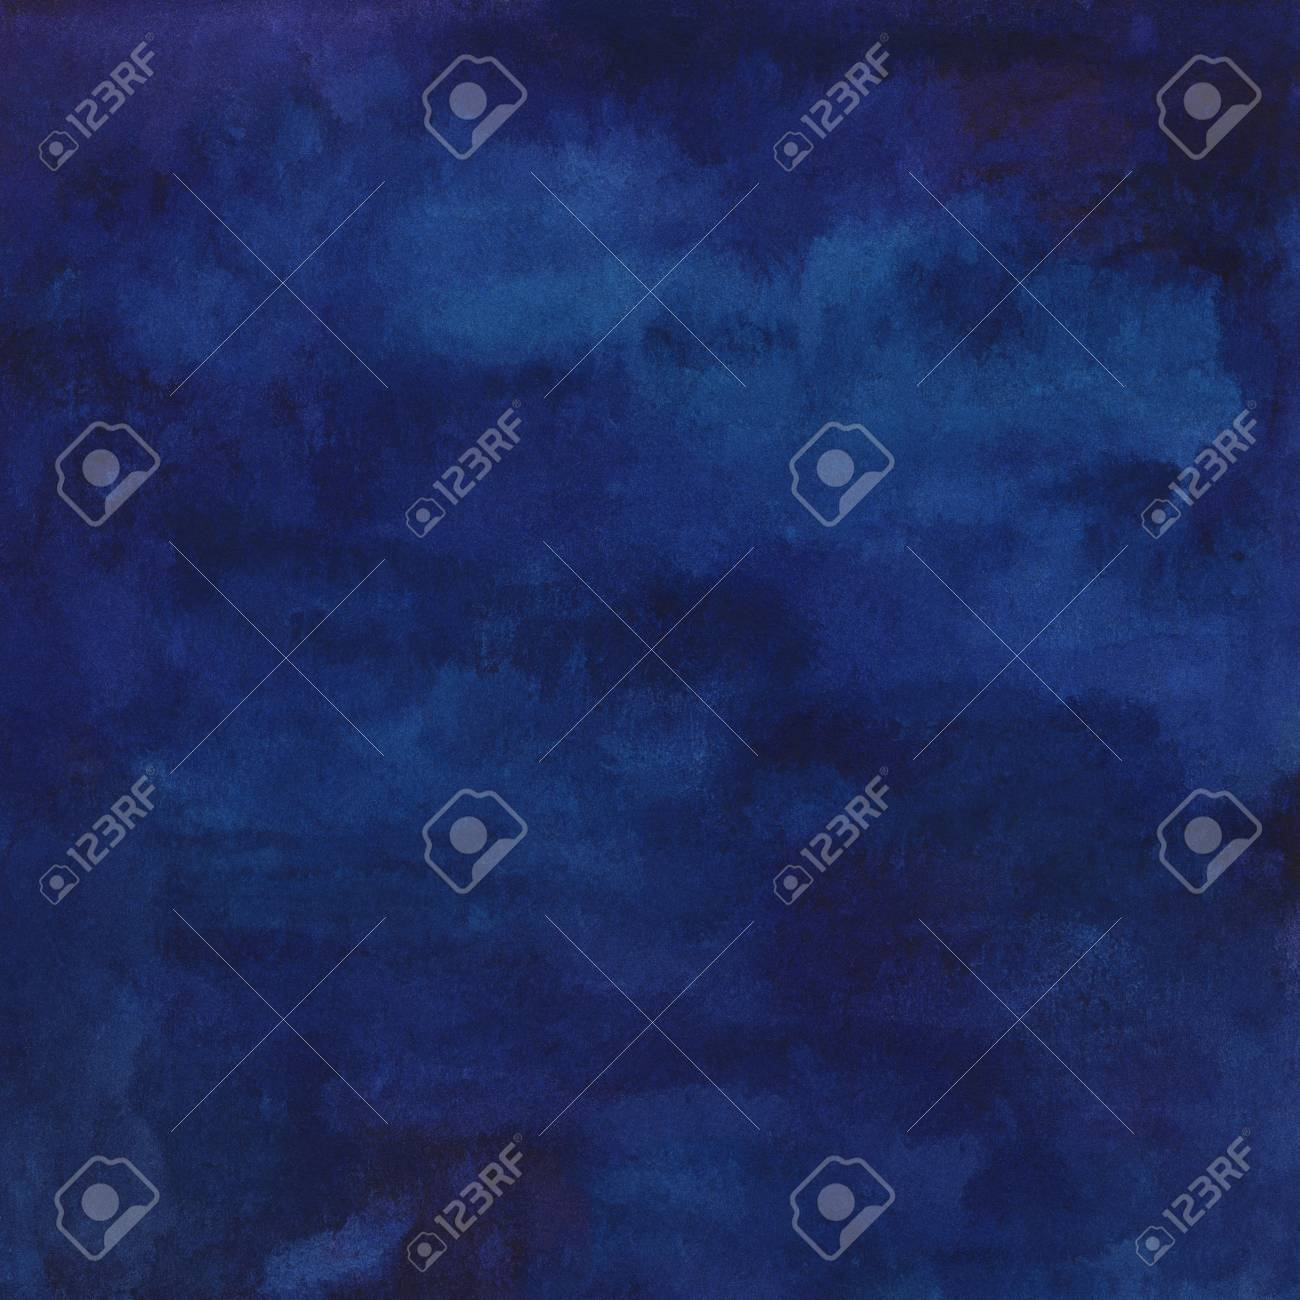 Hand Painted Watercolor Abstract Navy Blue Background For Your